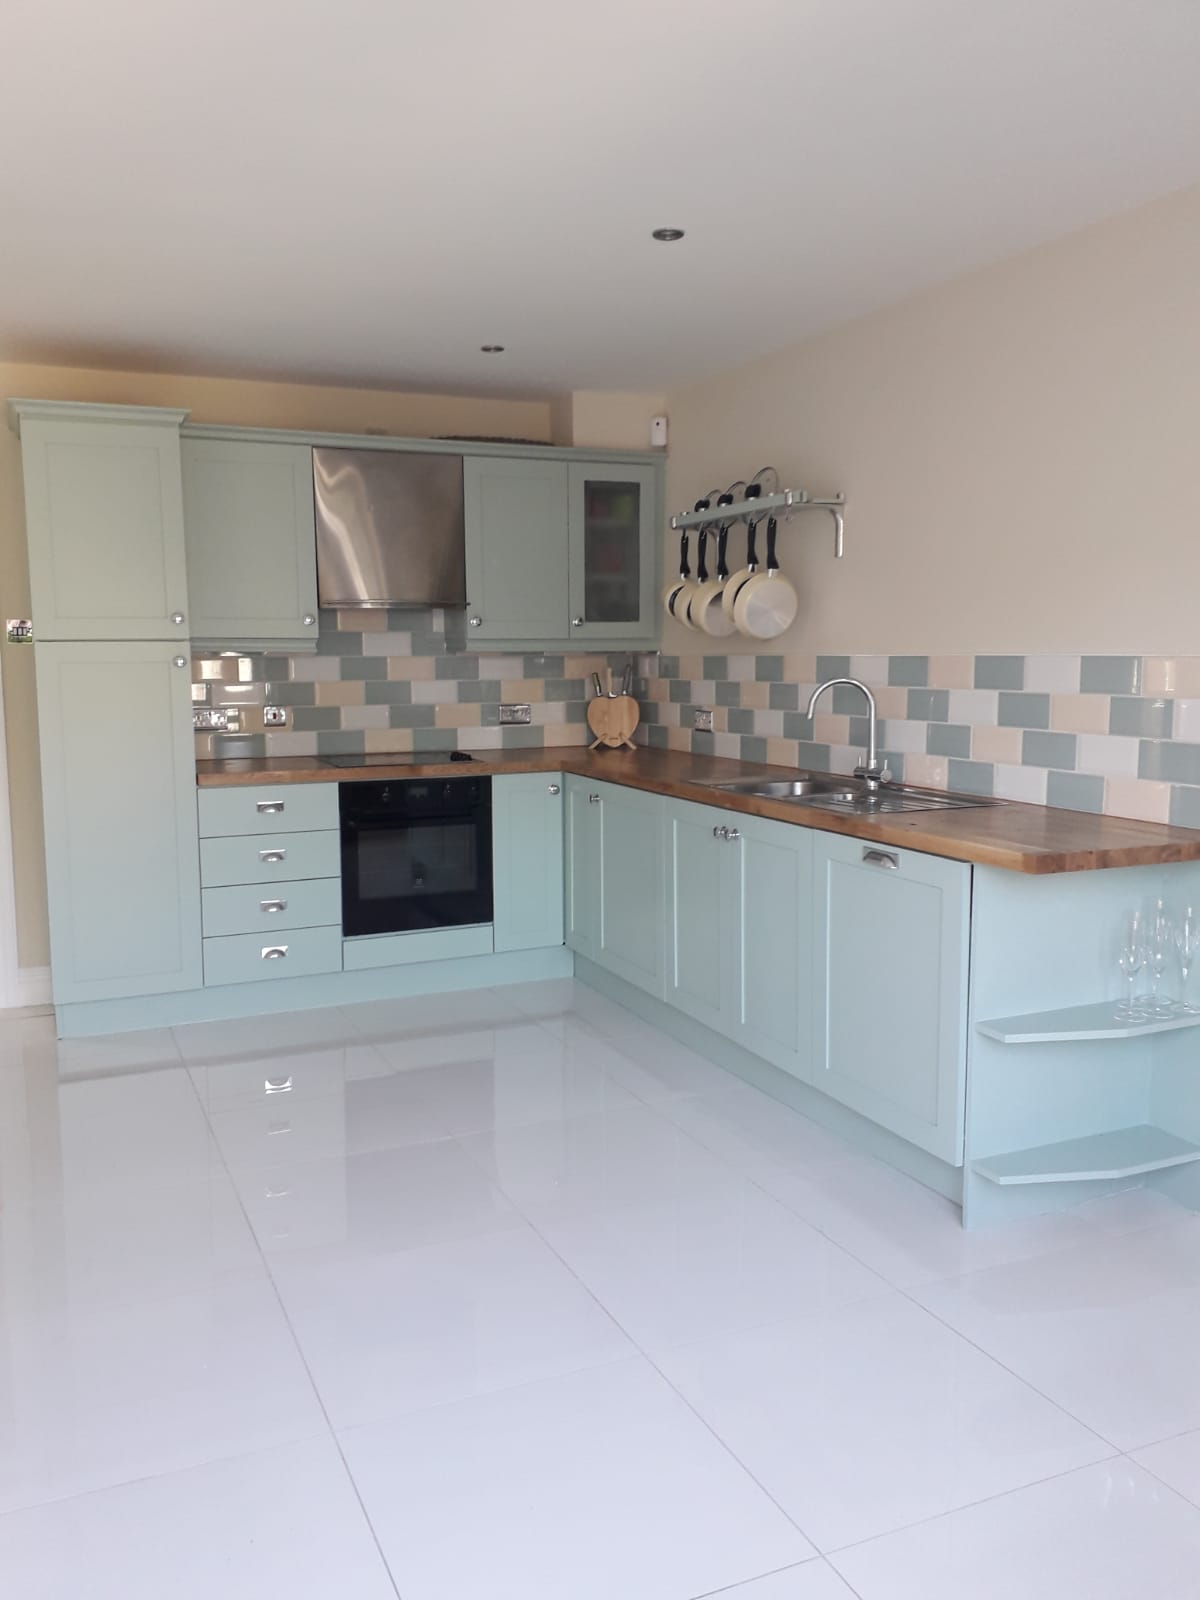 Kitchen Spray Painting - Get Your Free Quotation Today